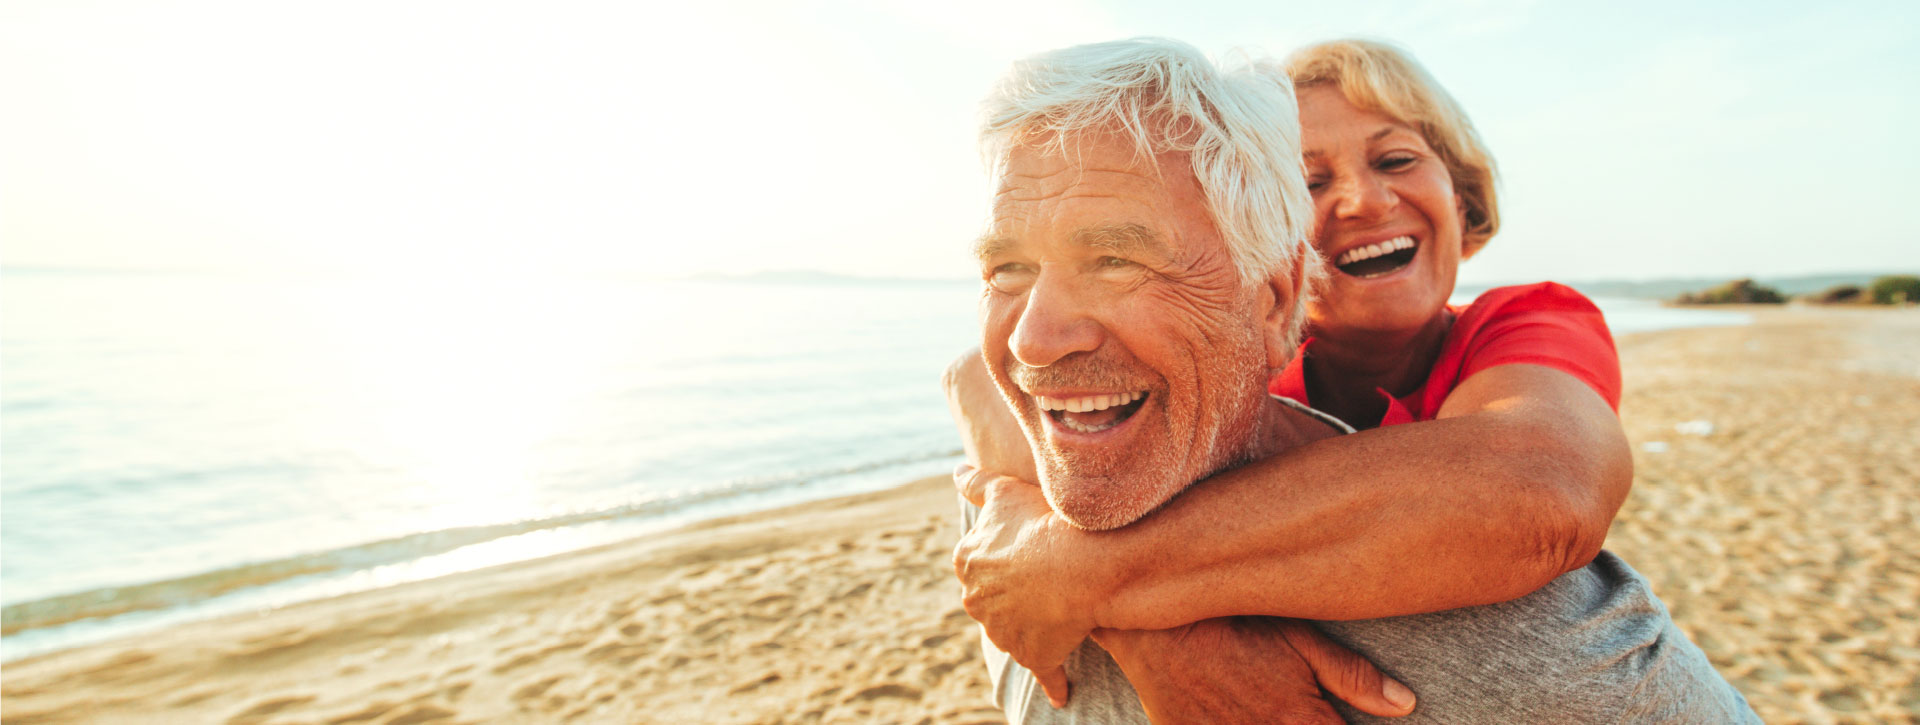 Man and woman embracing and smiling at beach